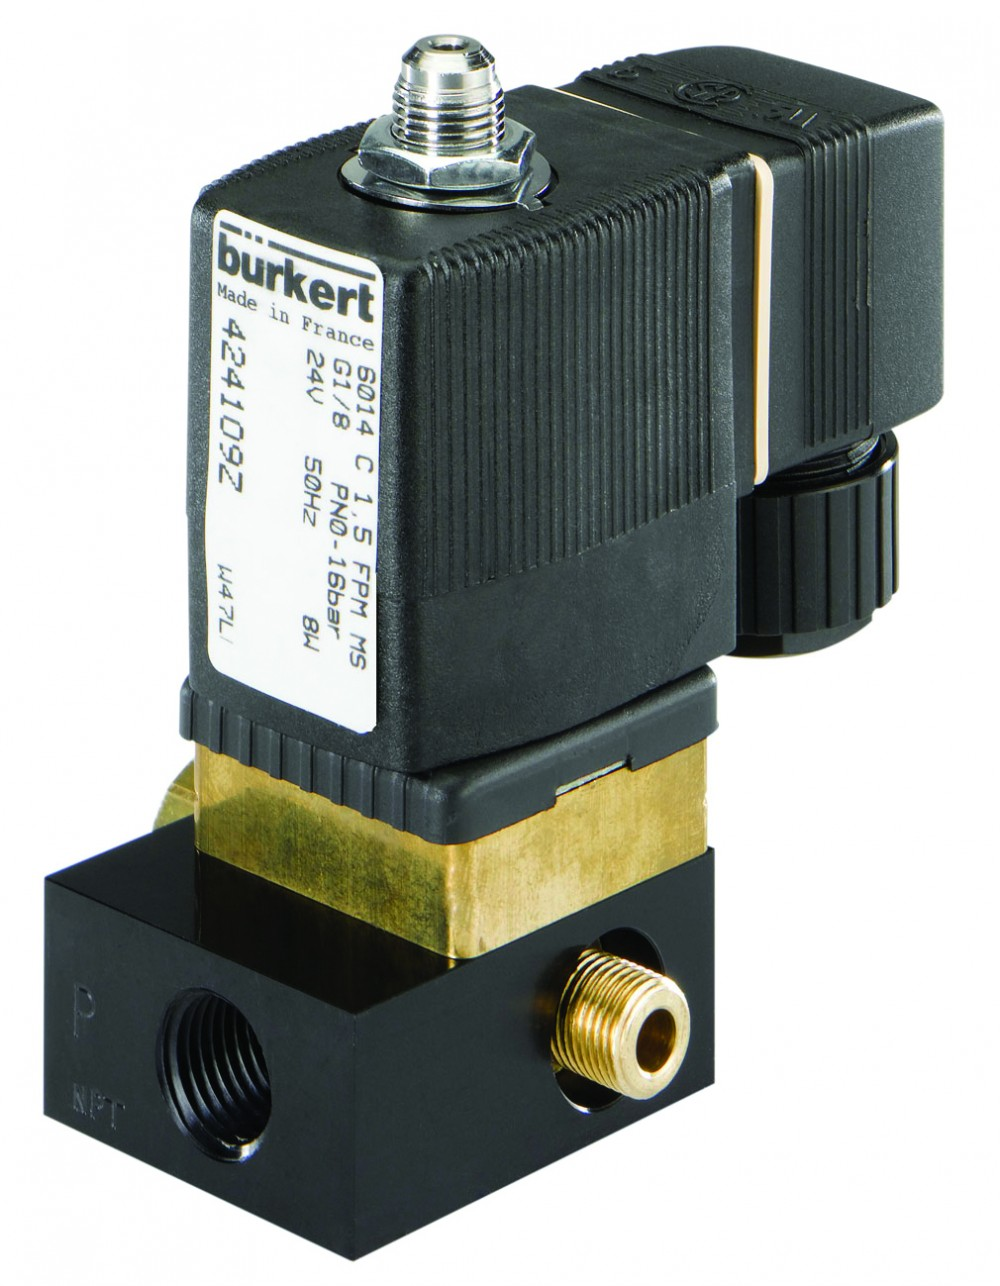 BURKERT TYPE 6014 - 3/2 WAY SOLENOID VALVE DIRECT MOUNTING